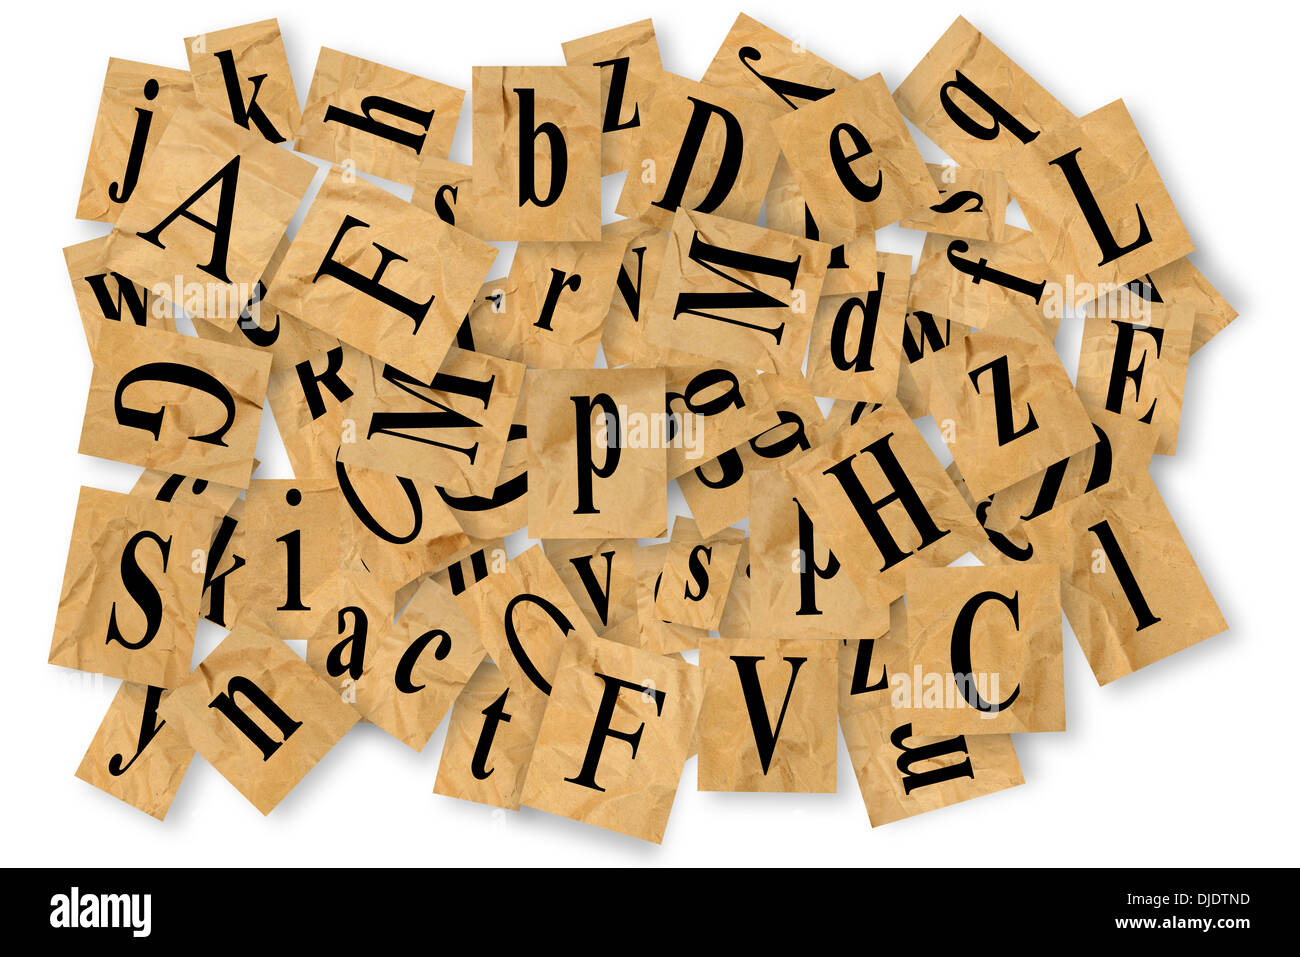 Letters cut out of newspaper on white background stock photo letters cut out of newspaper on white background spiritdancerdesigns Gallery